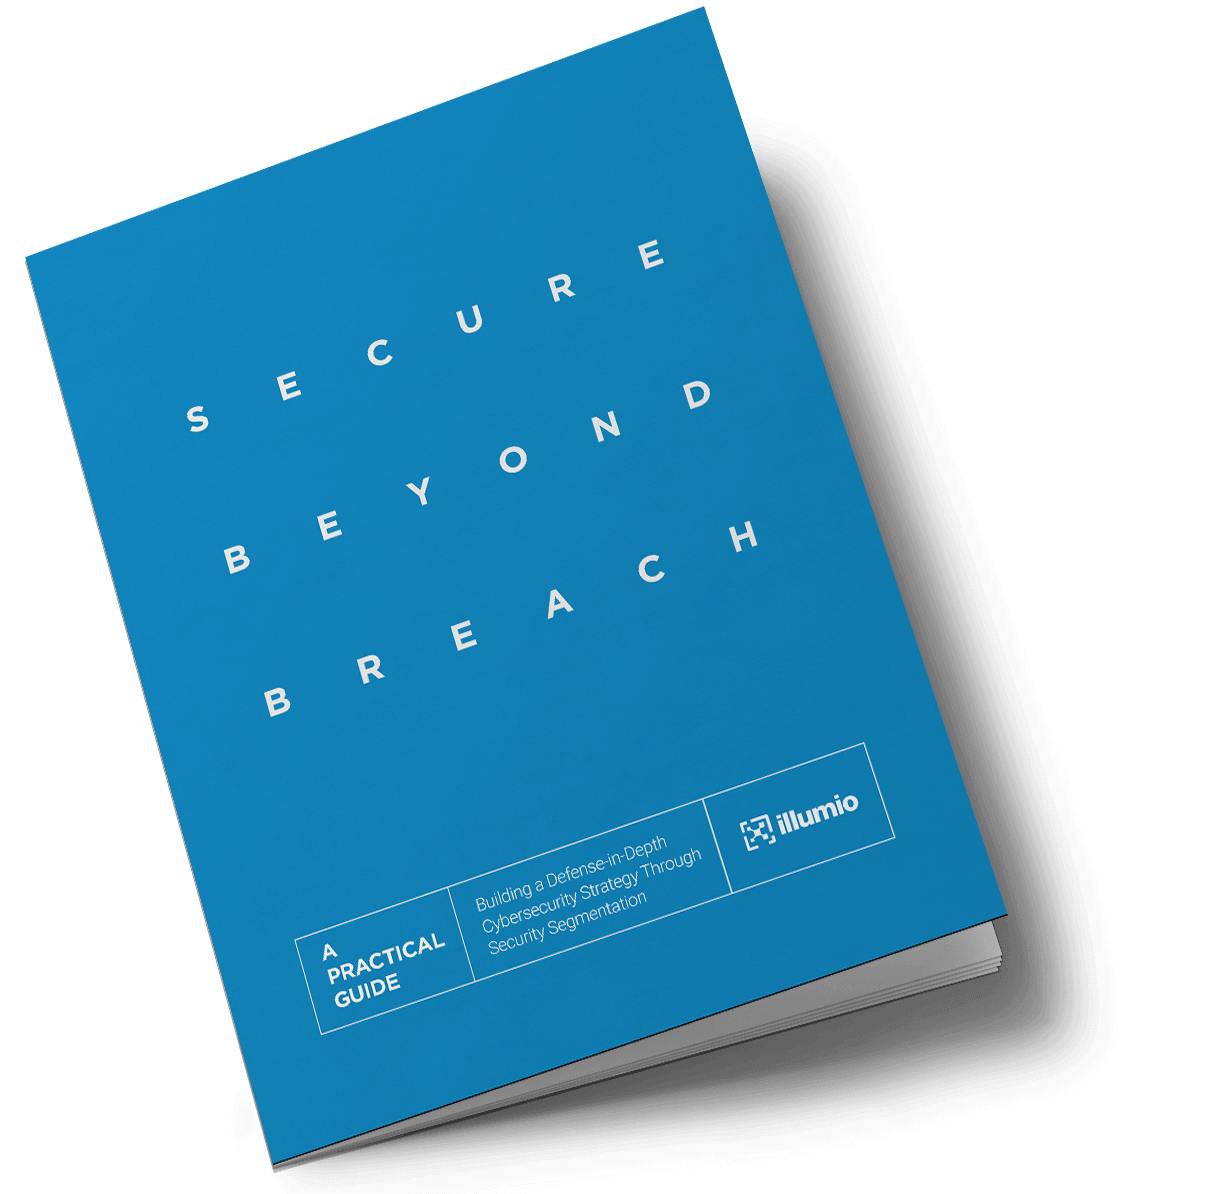 secure-beyond-breach@1,25x-tiny